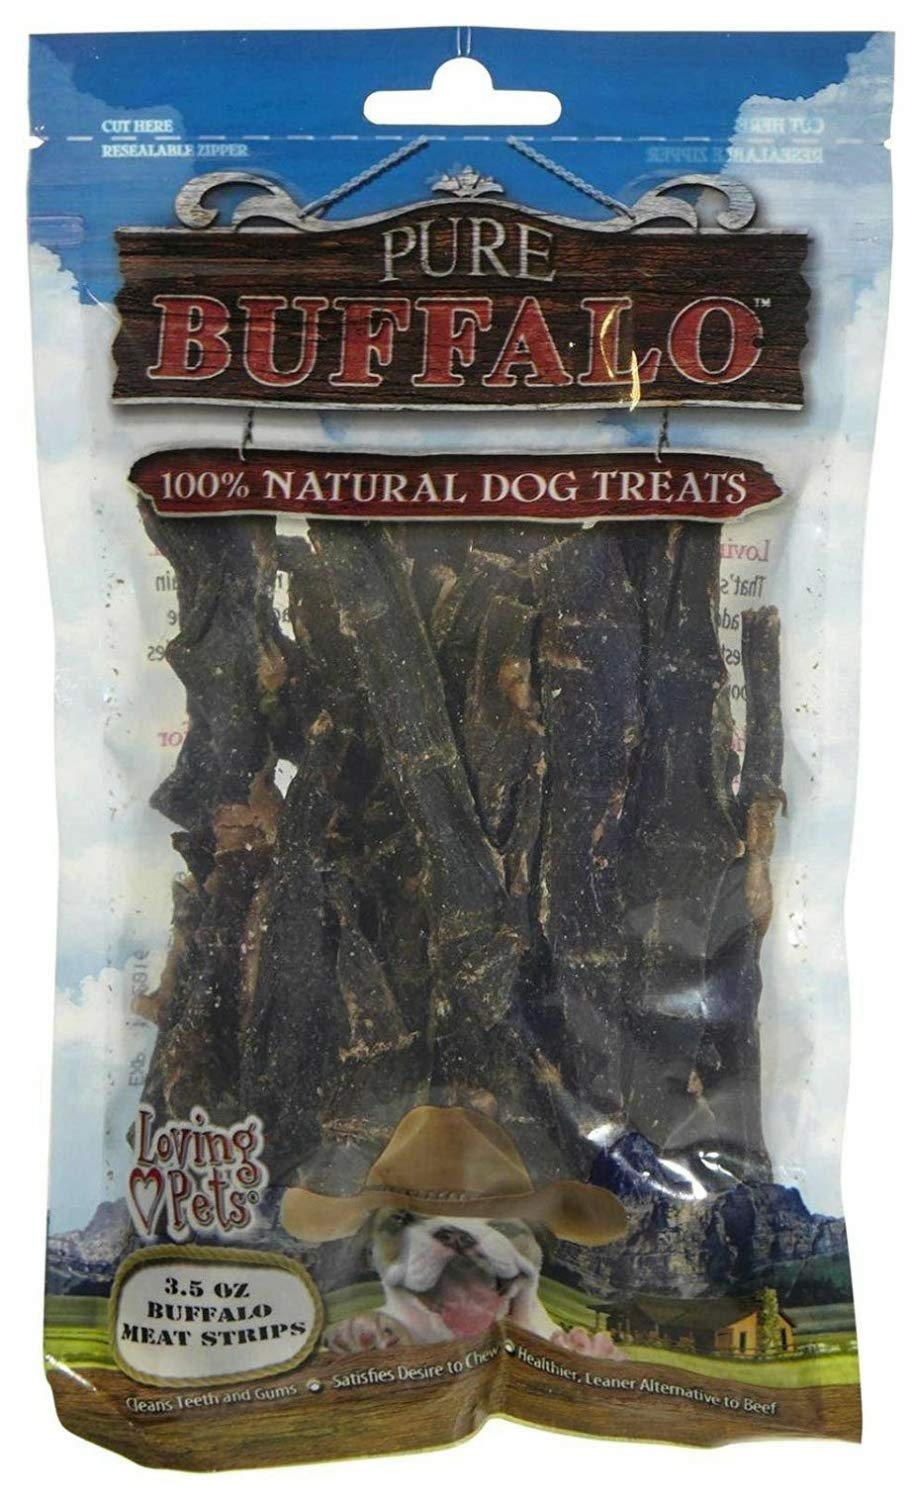 Loving Pets Pure Buffalo Meat Jerky Strips Dog Chews, 3.5 Ounce, 24 Pack by Loving Pets (Image #1)